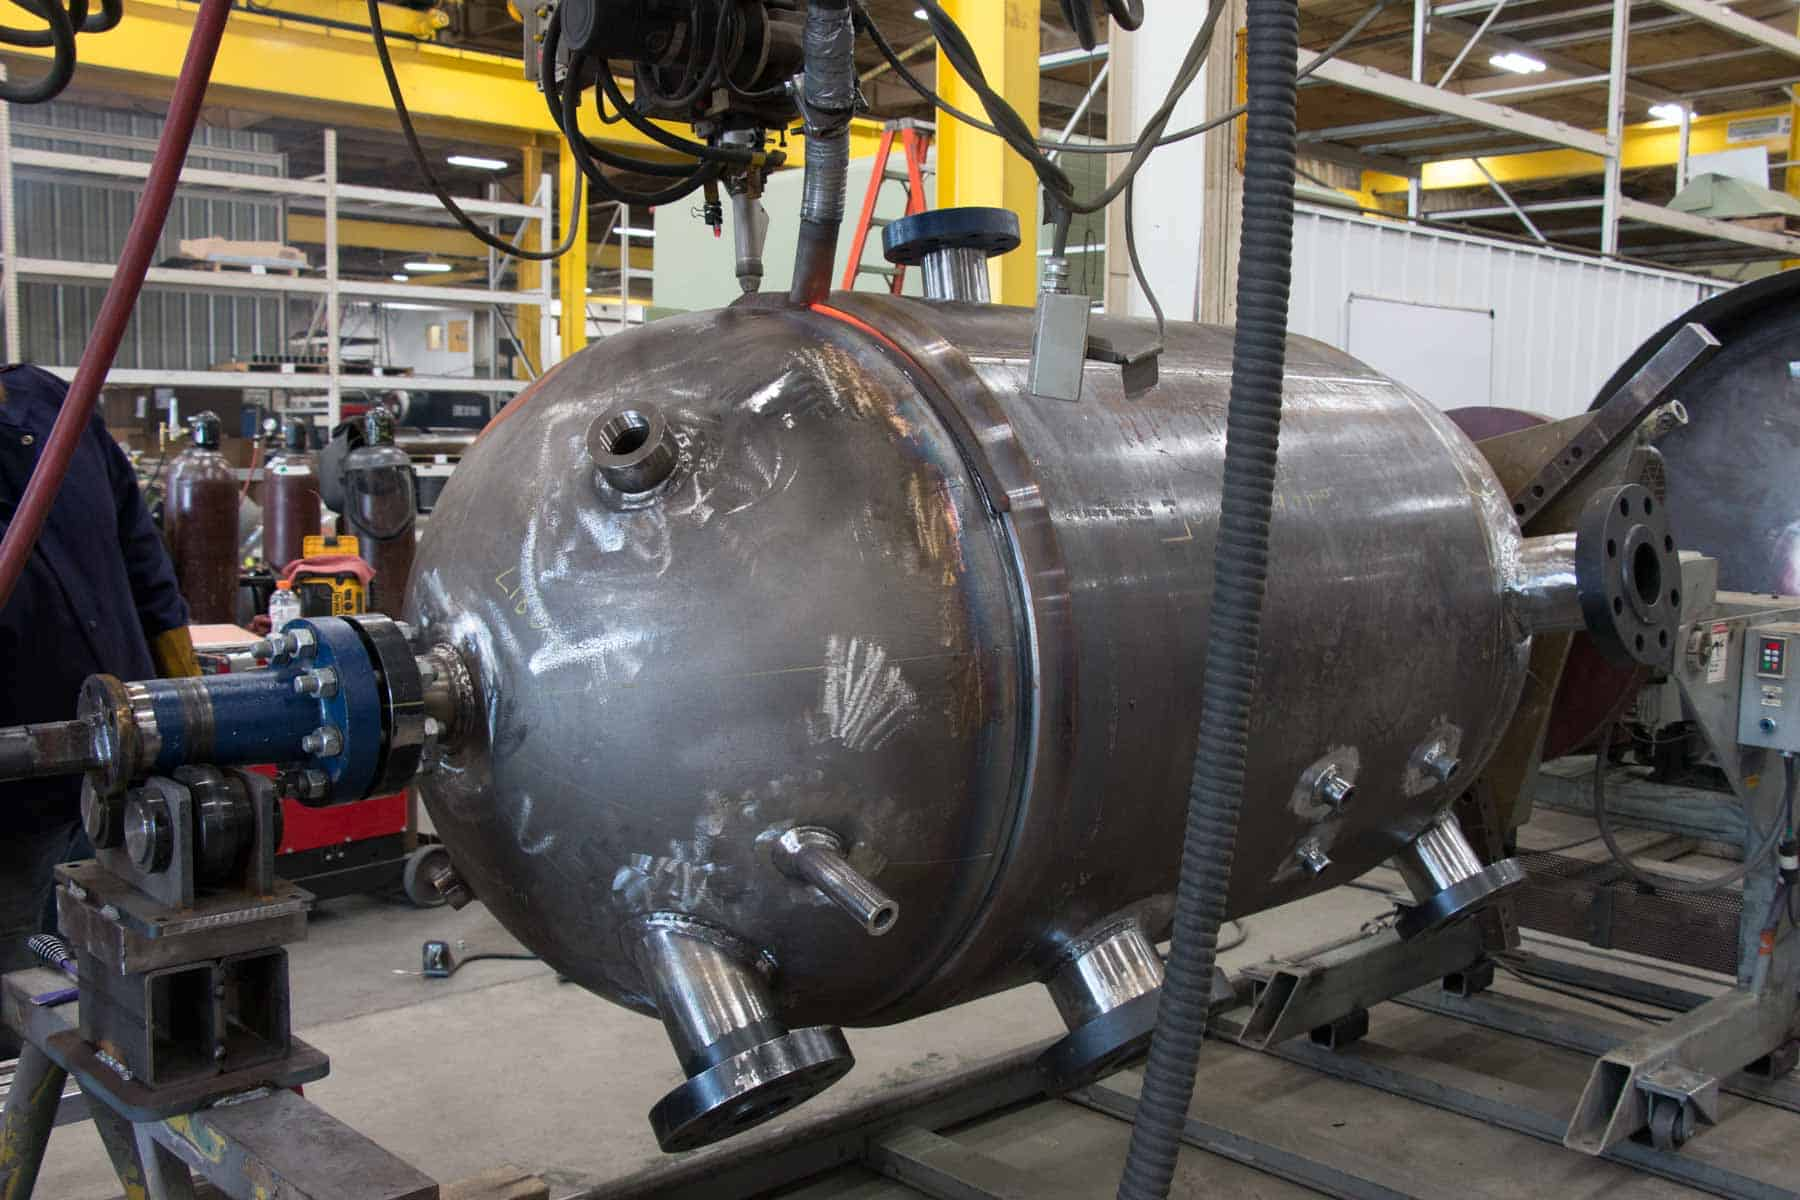 Safety is the top priority for pressure vessel manufacturers